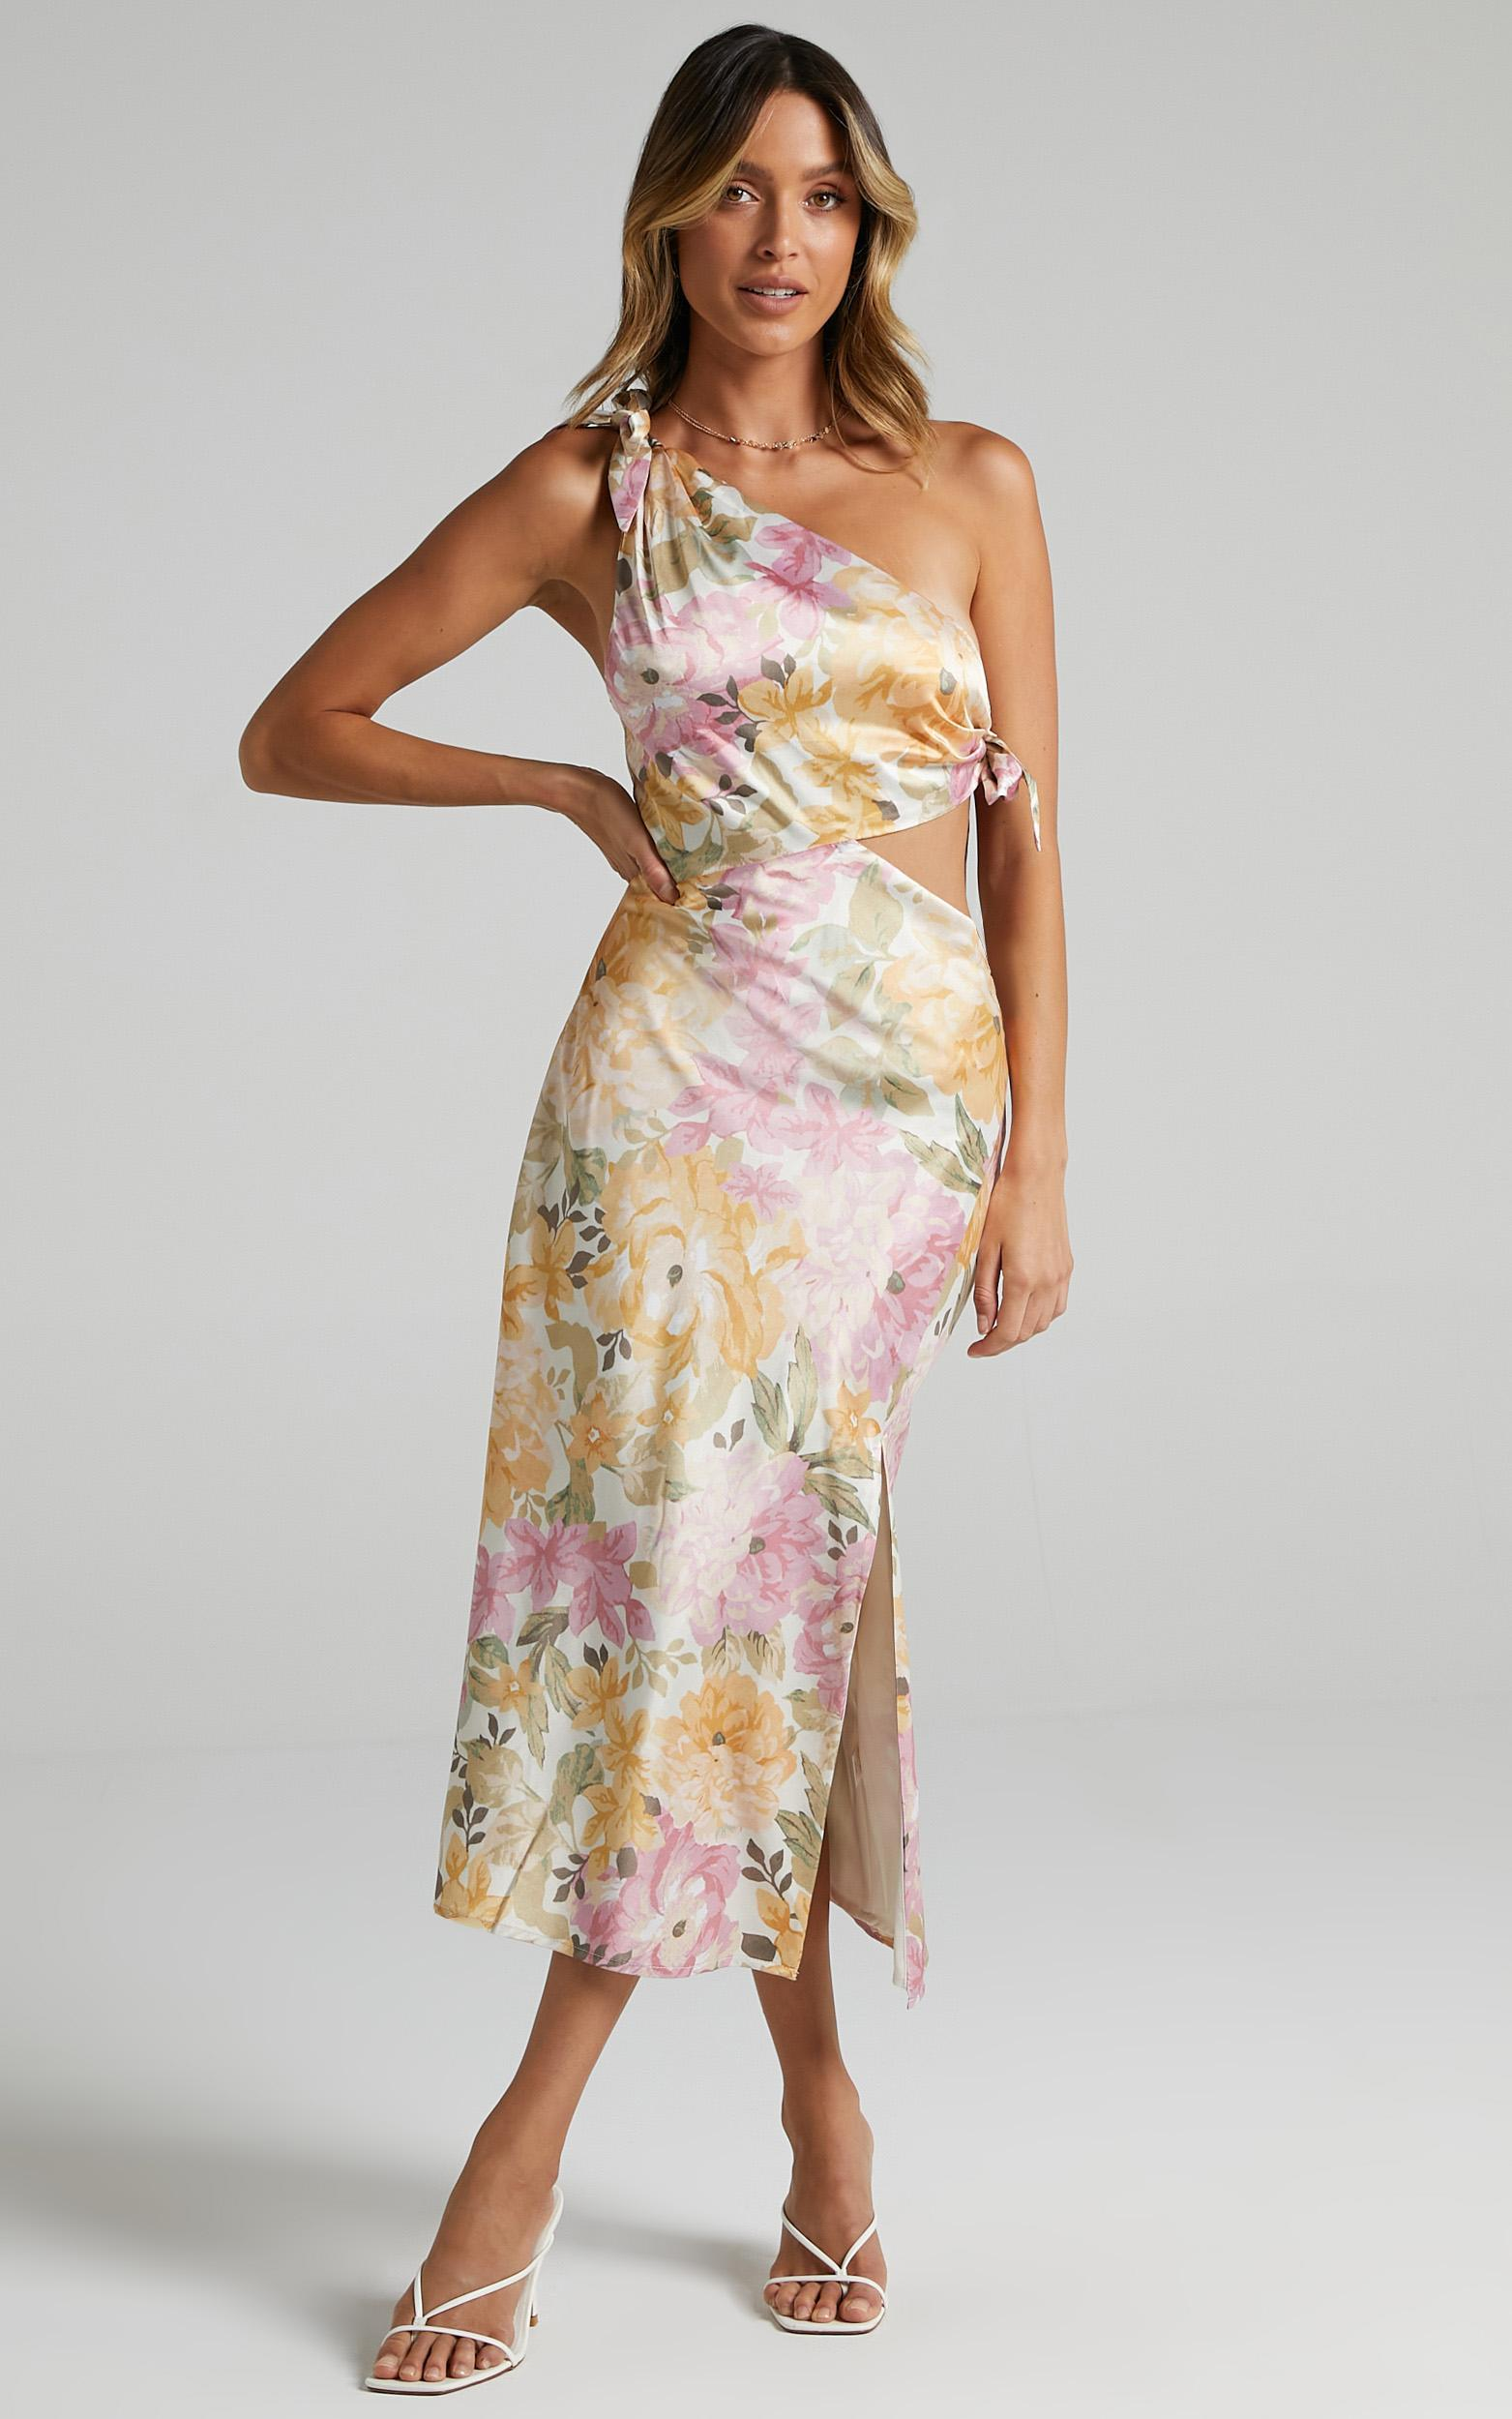 Glaucus Dress in Elegant Rose - 6 (XS), Multi, hi-res image number null